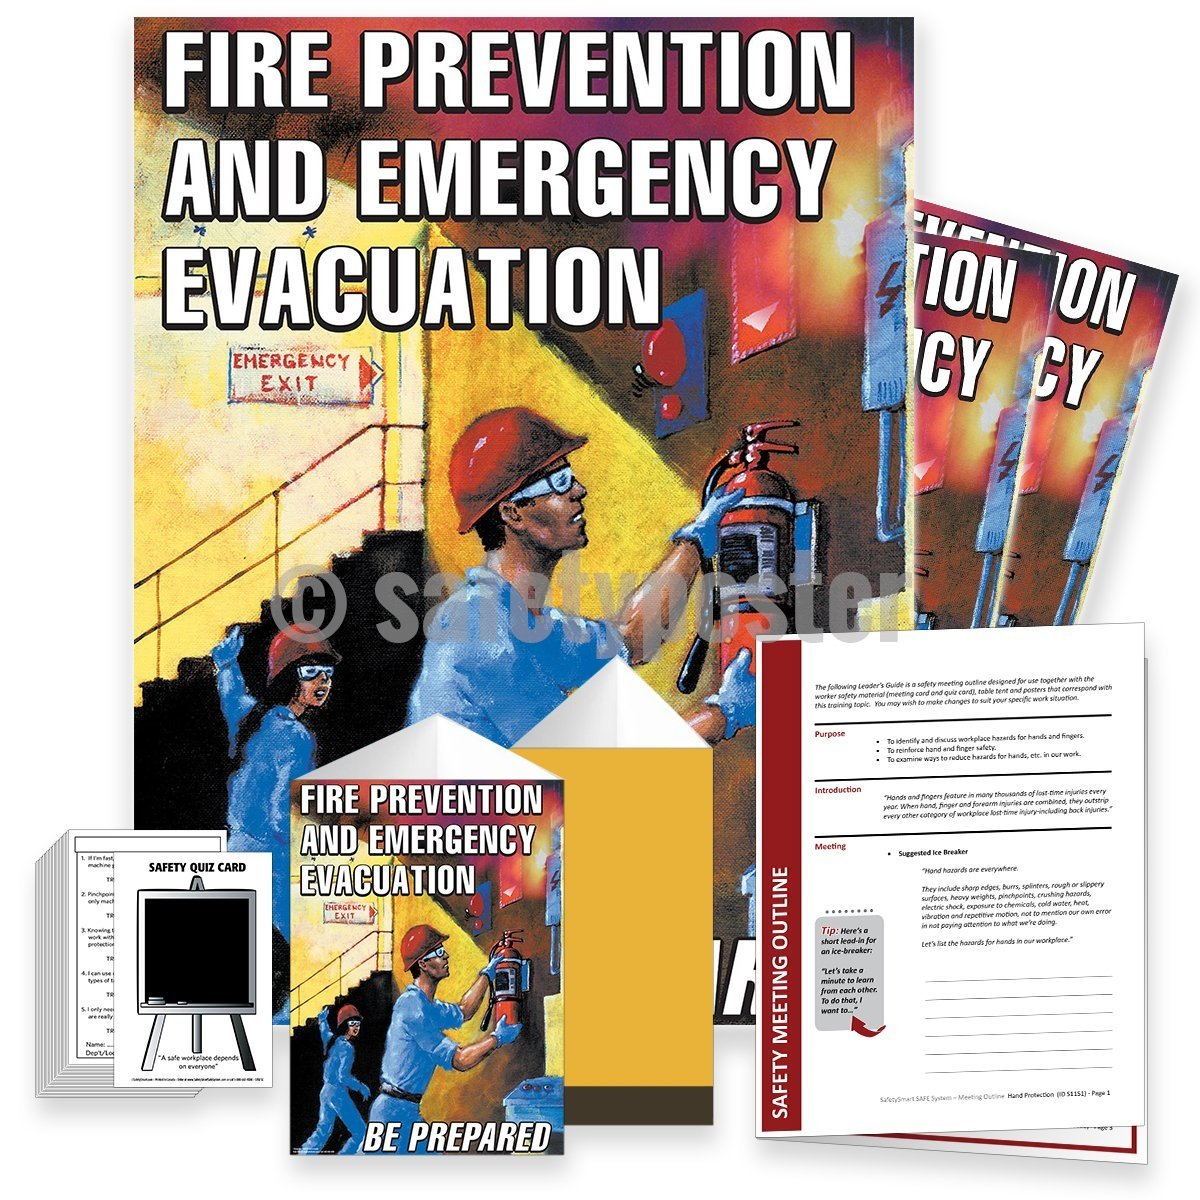 Safety Meeting Kit - Fire Prevention And Emergency Evacuation Kits